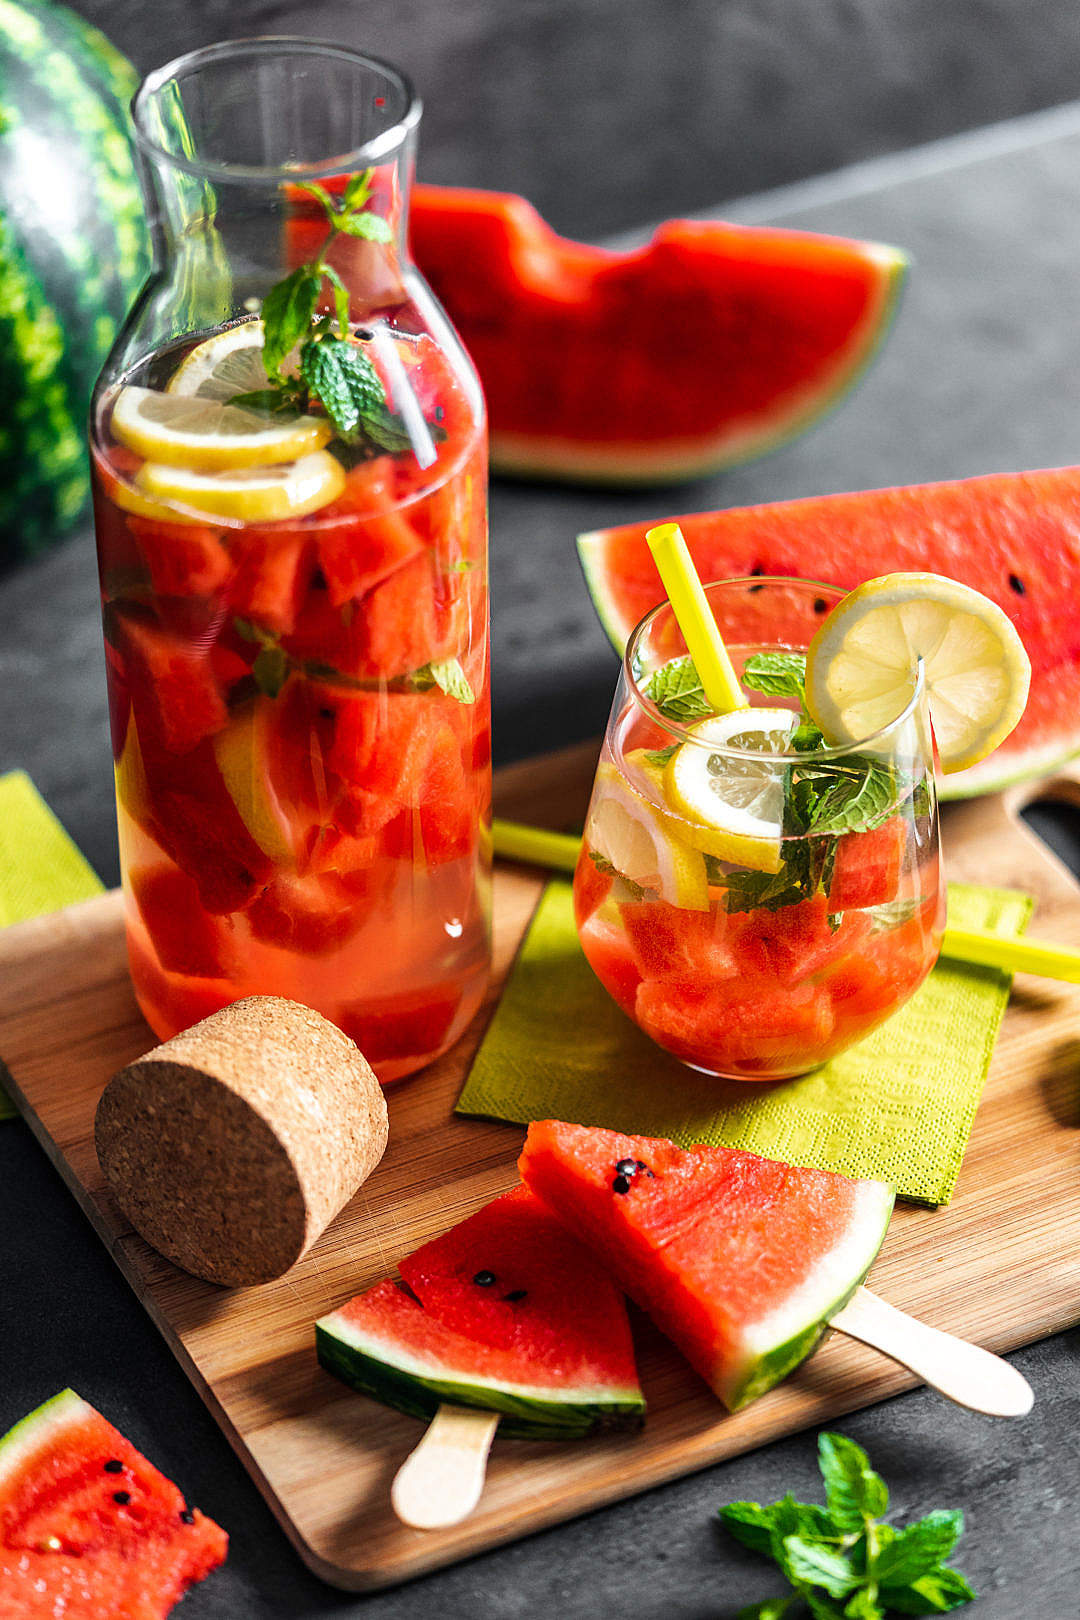 Download Watermelon Summer Drink with Watermelon Popsicles FREE Stock Photo